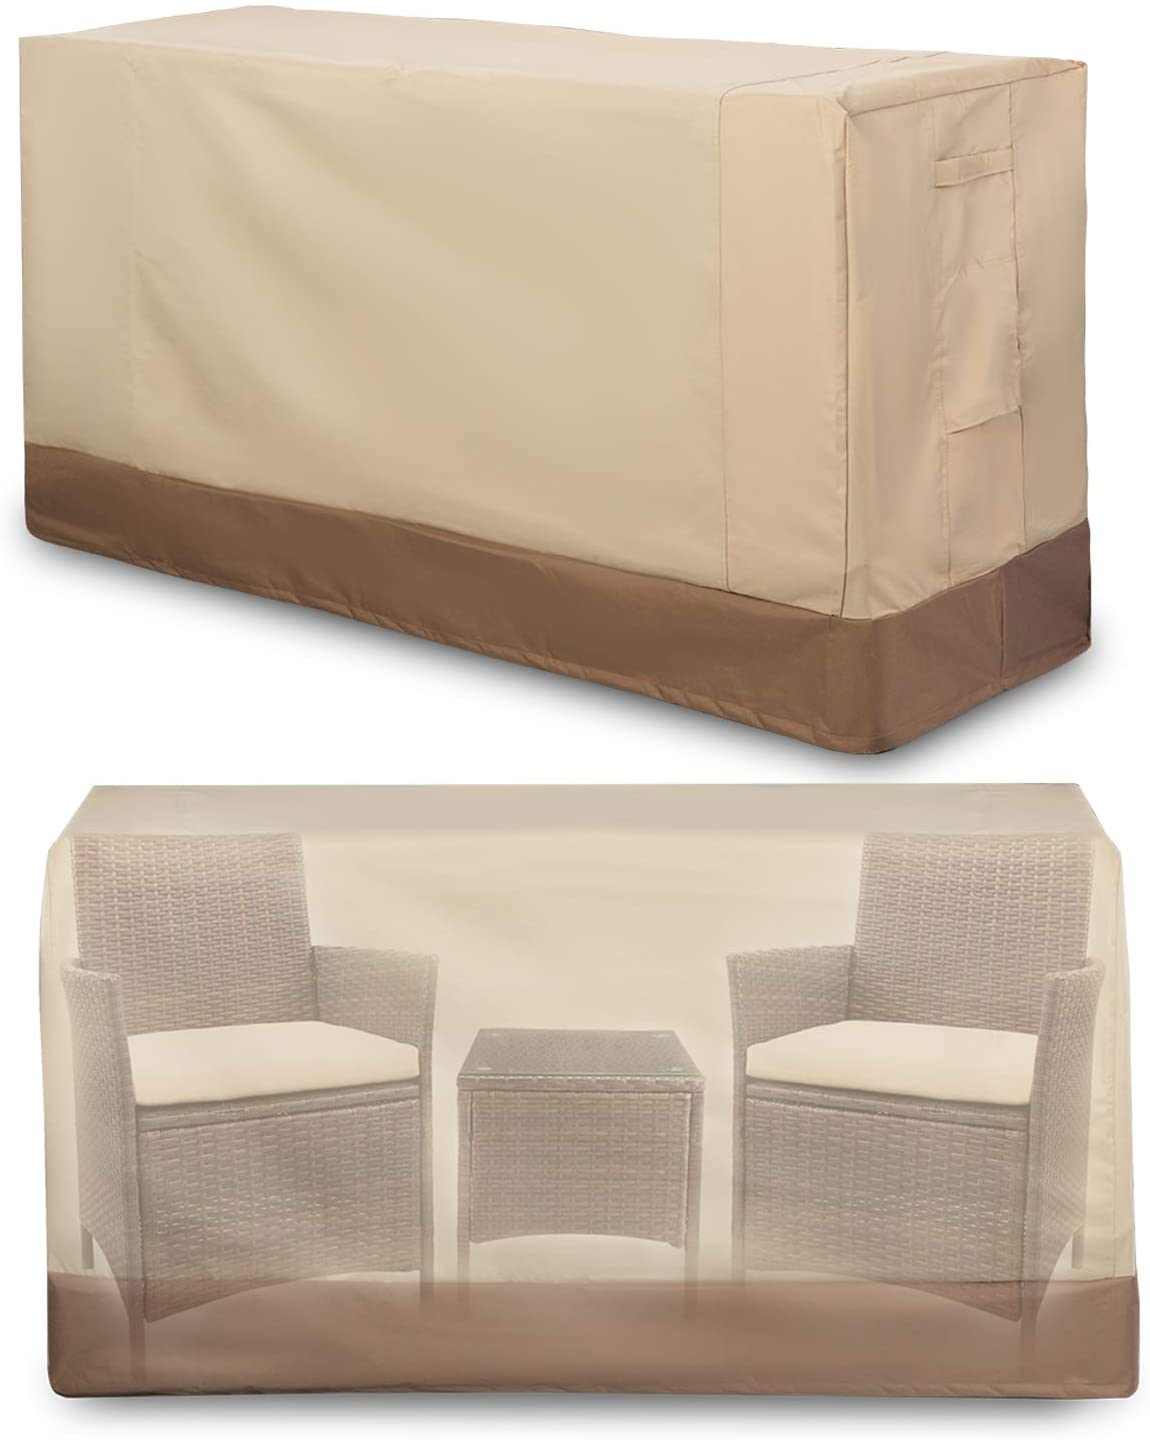 "Patio Furniture Set Covers Outdoor 100% Waterproof 600D Oxford Polyester Durable Heavy Covers Suitable for 3 Pieces Conversation Sets Size 64"" x 24"" x 34"" , Beige & Brown"